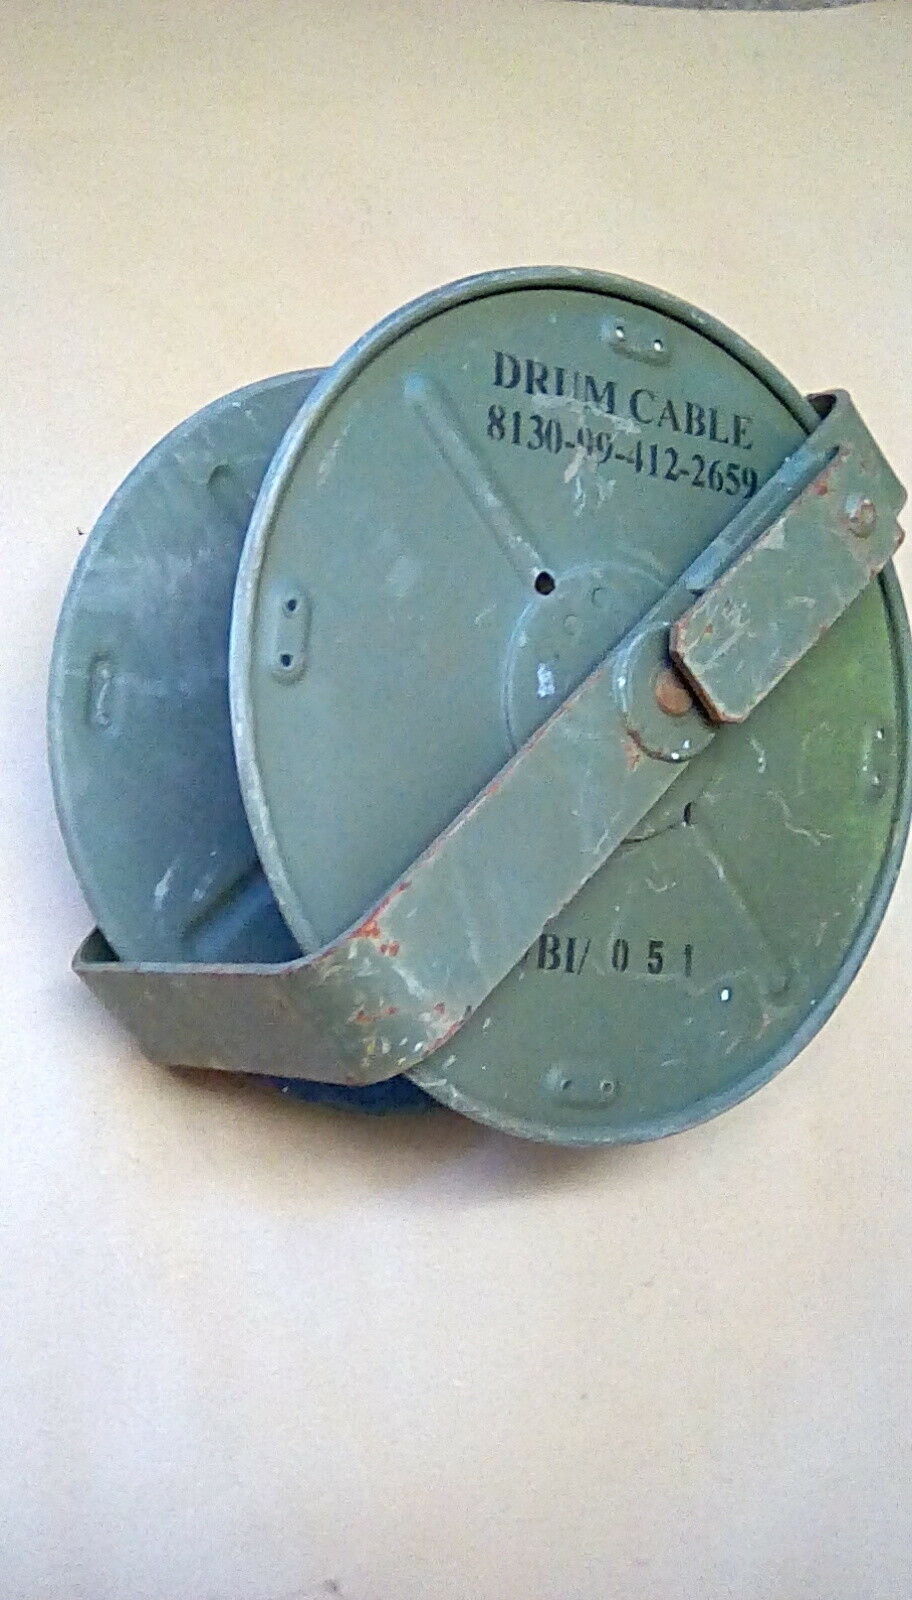 EX MOD CLANSMAN D10 Cable Reel Drum 13 Inch With Mount Bracket ...